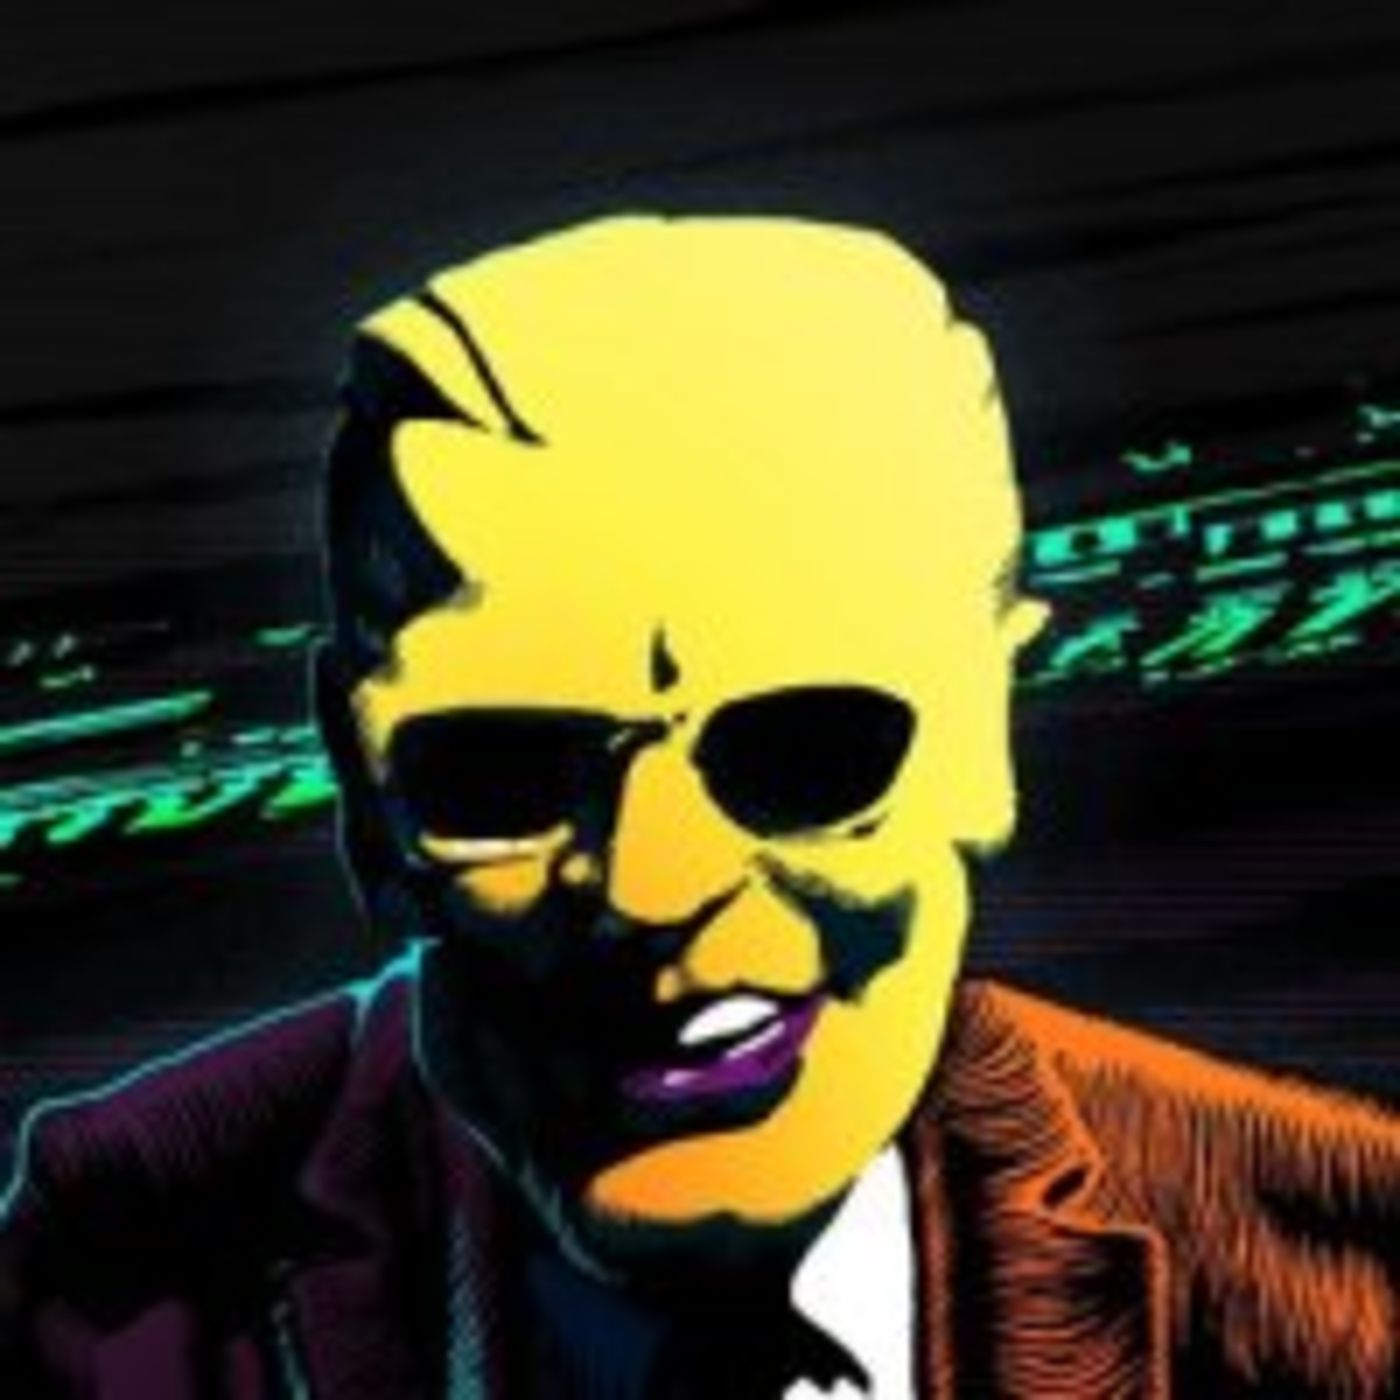 Experiment 036 - BBC Ya Later: The Max Headroom Incident